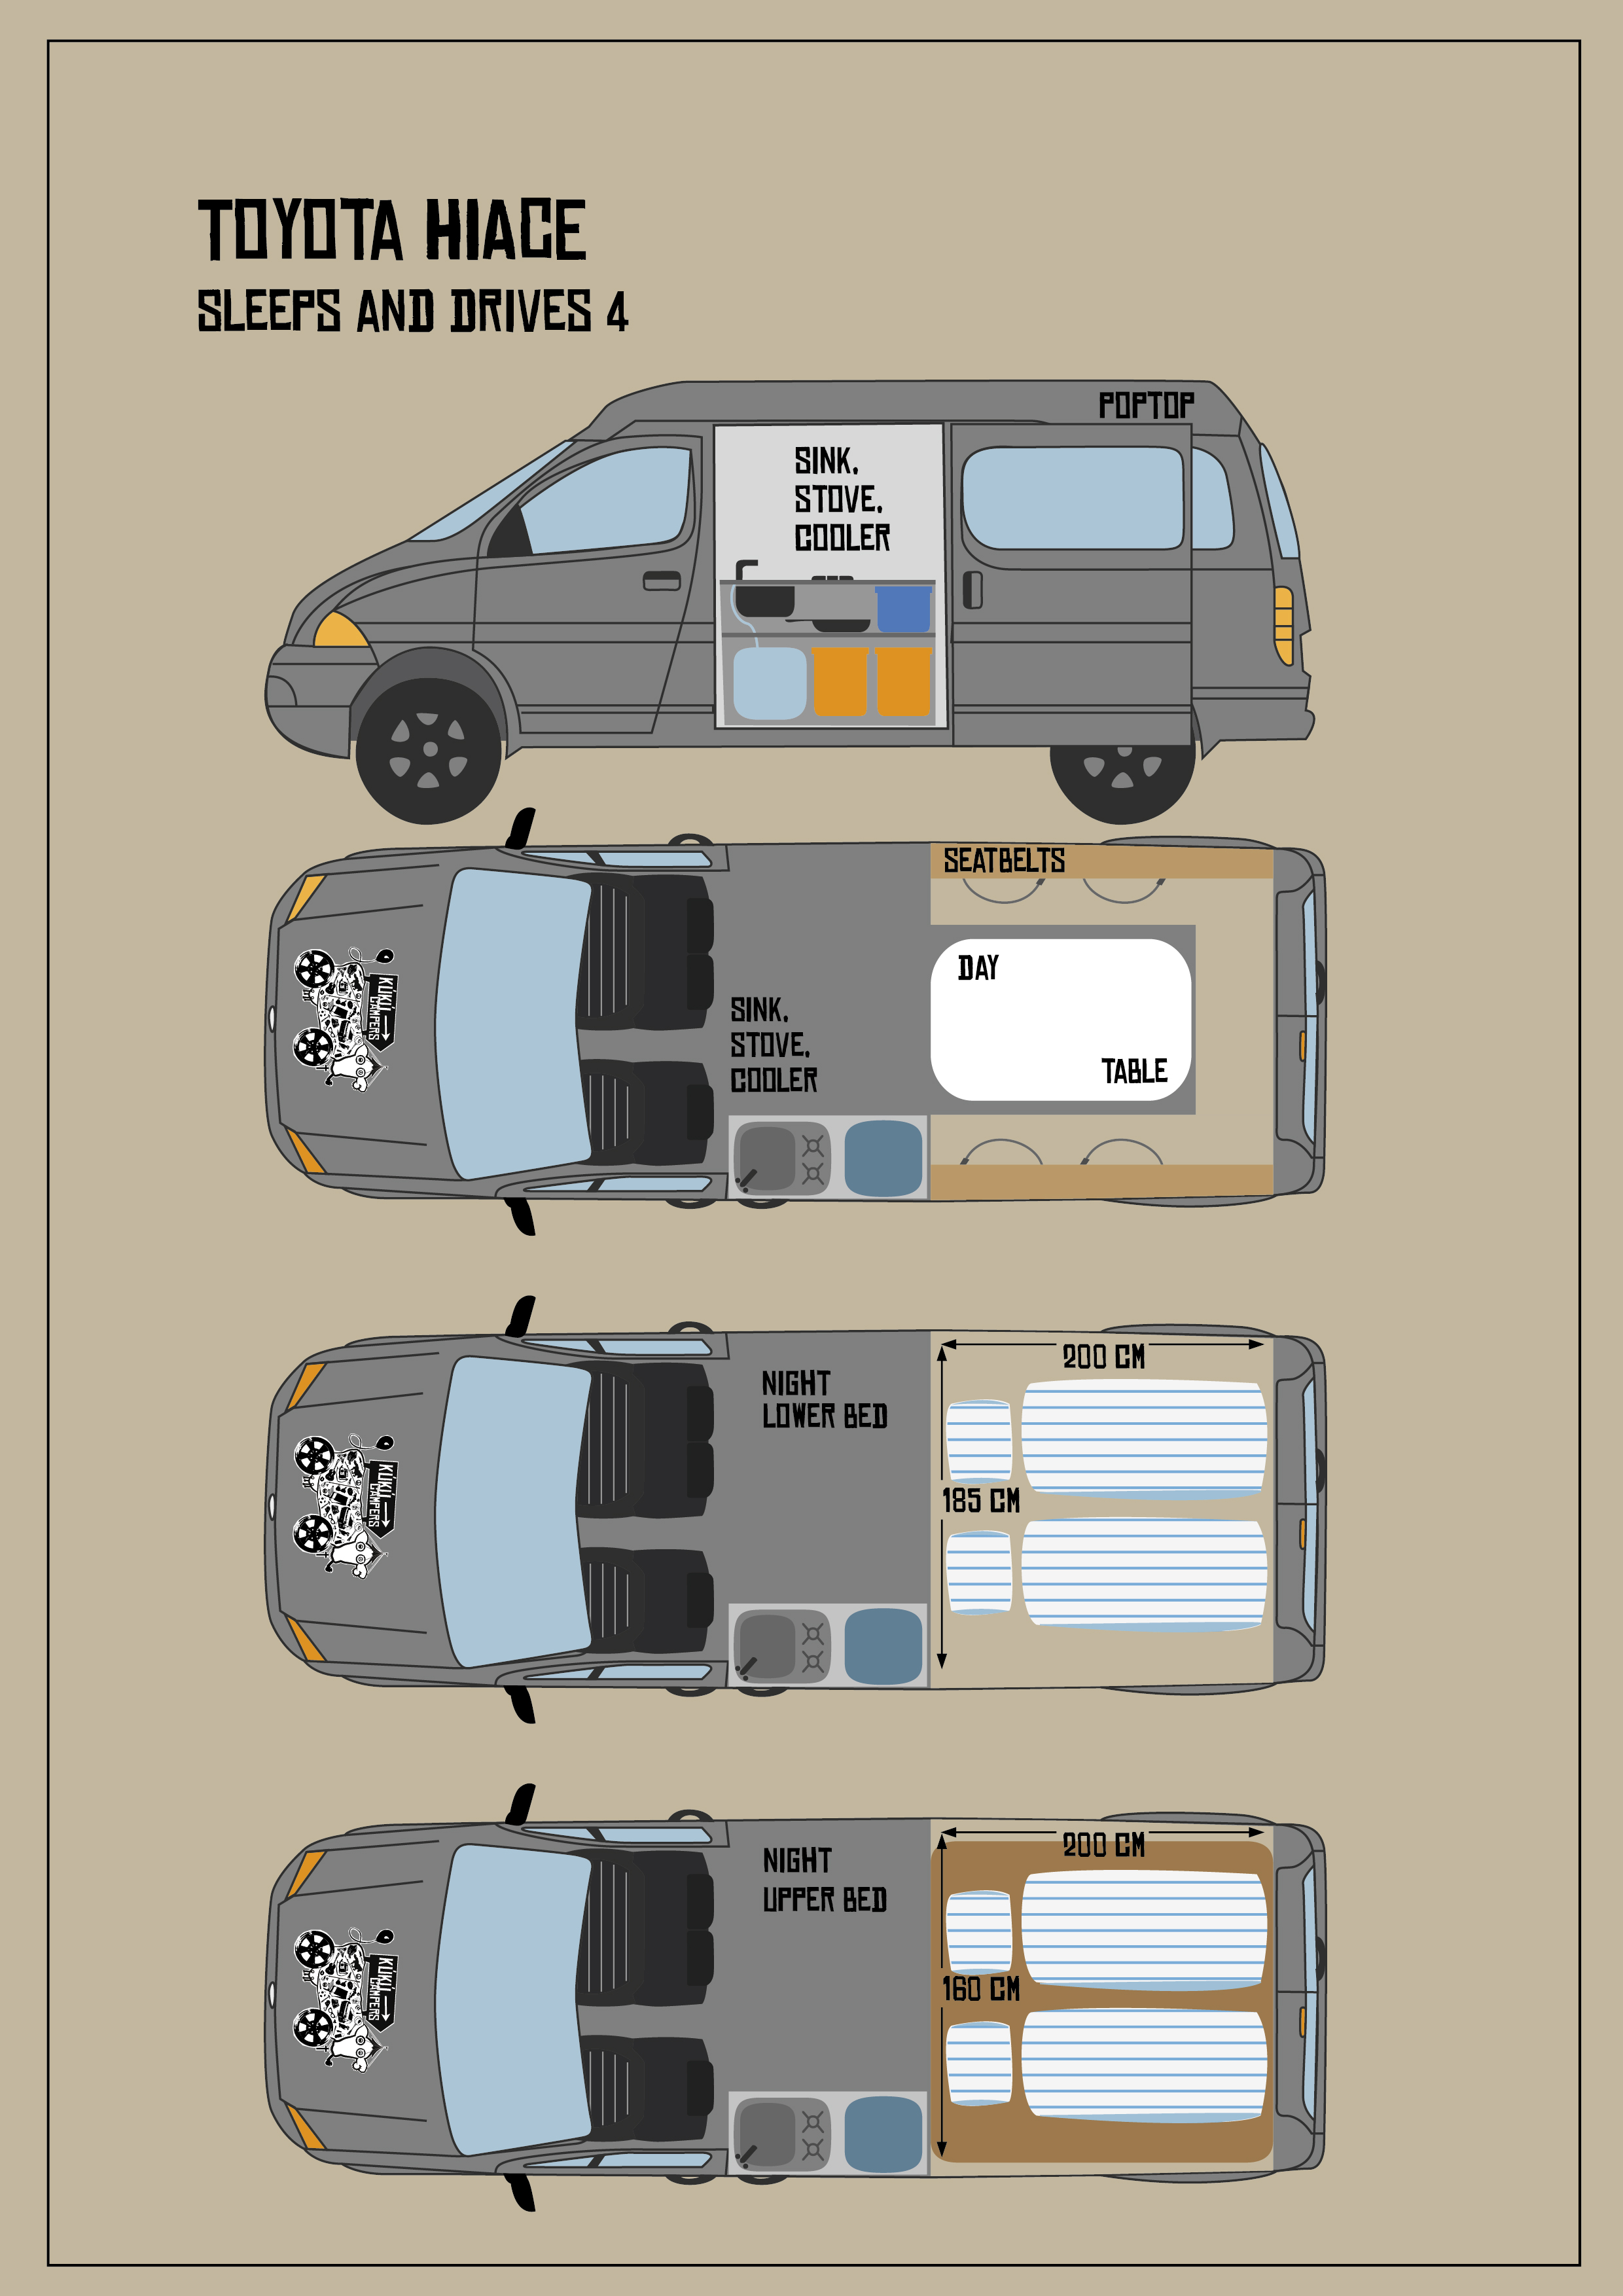 E - MANUAL 4x4 Toyota Hiace or similar - 4 pers - Campers ...